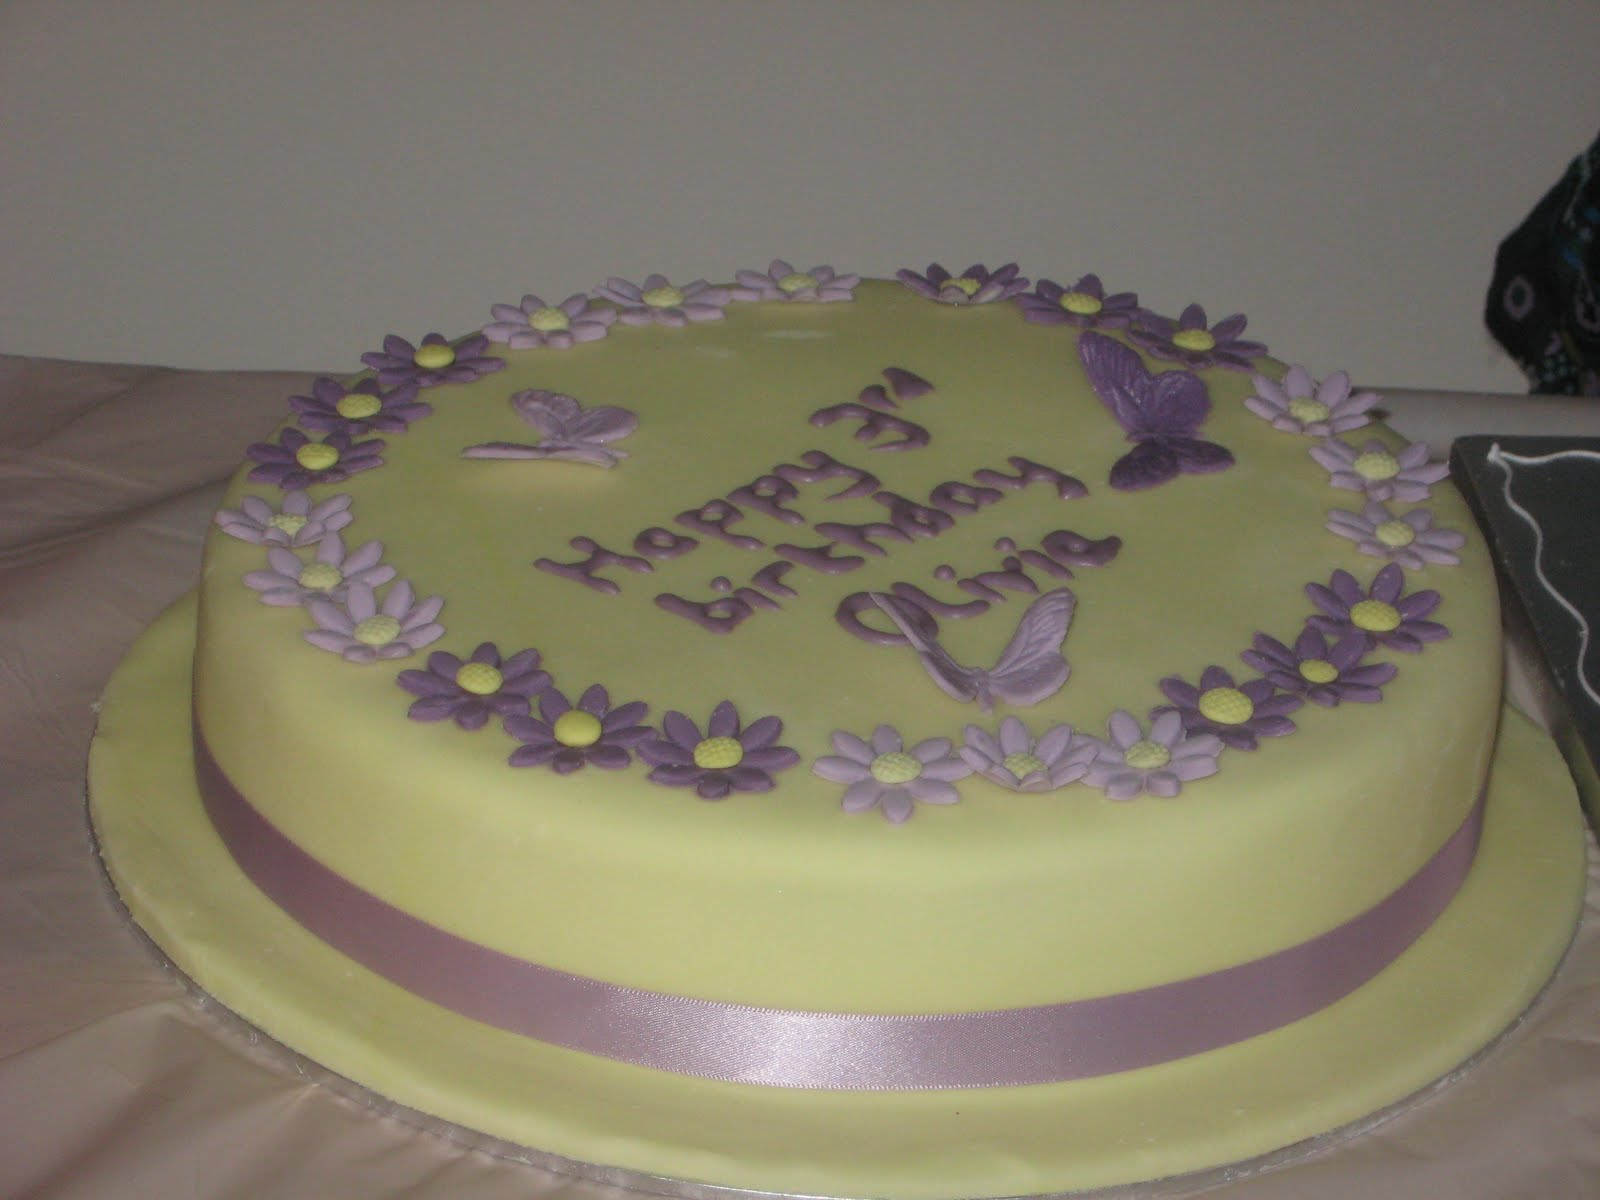 Birthday Cake Images For Cousin Sister : The Great Cake Experience